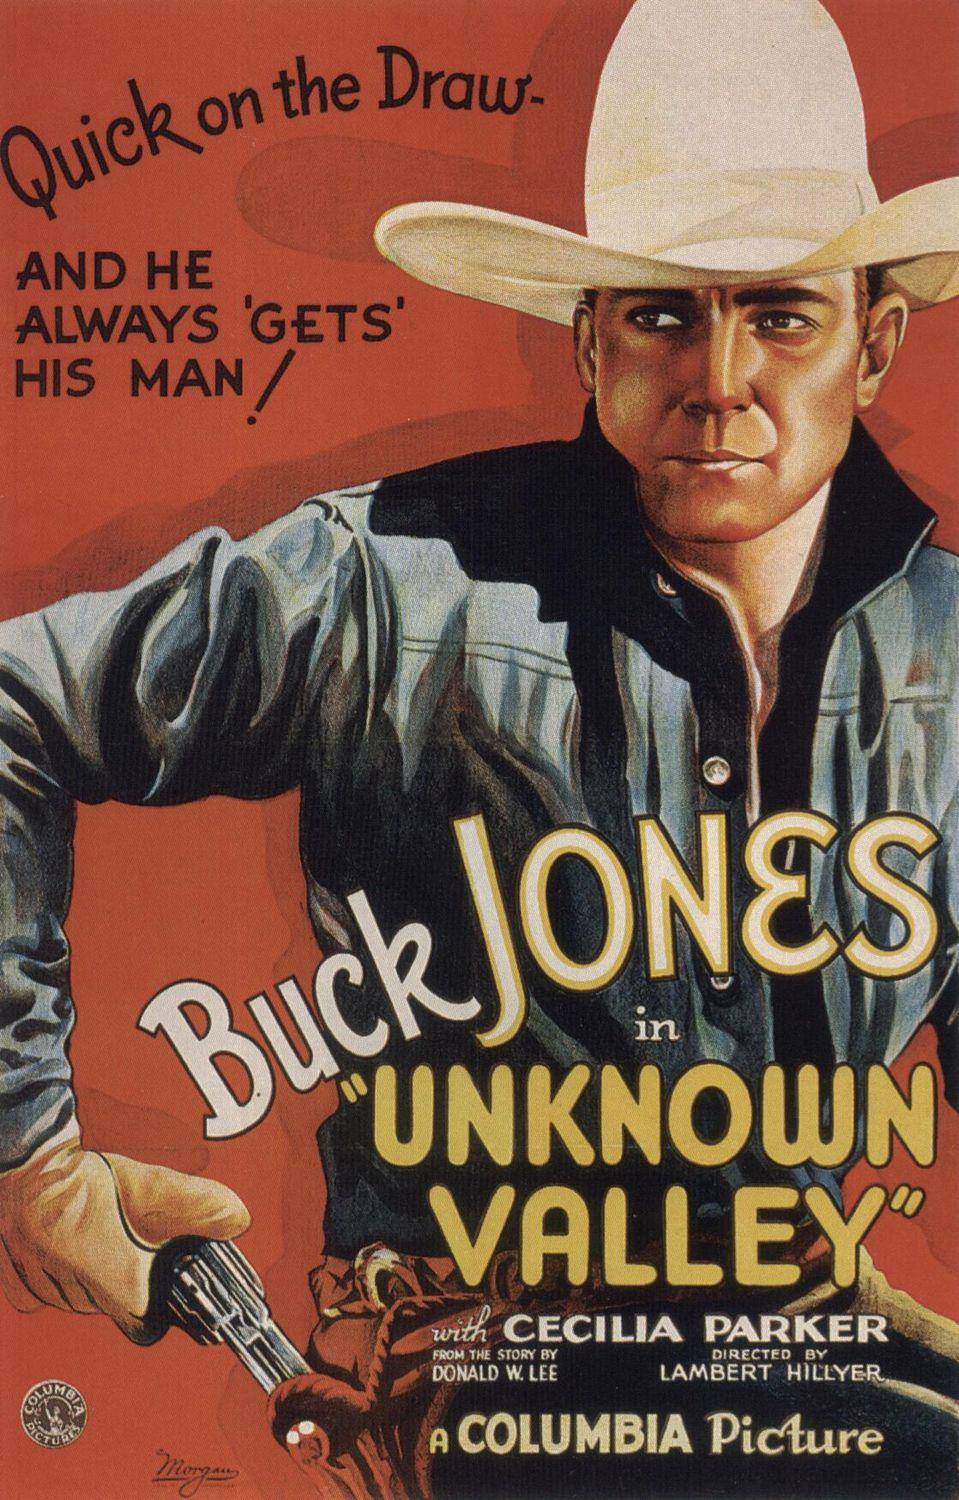 Unknown Valley - Buck Jones - old western poster